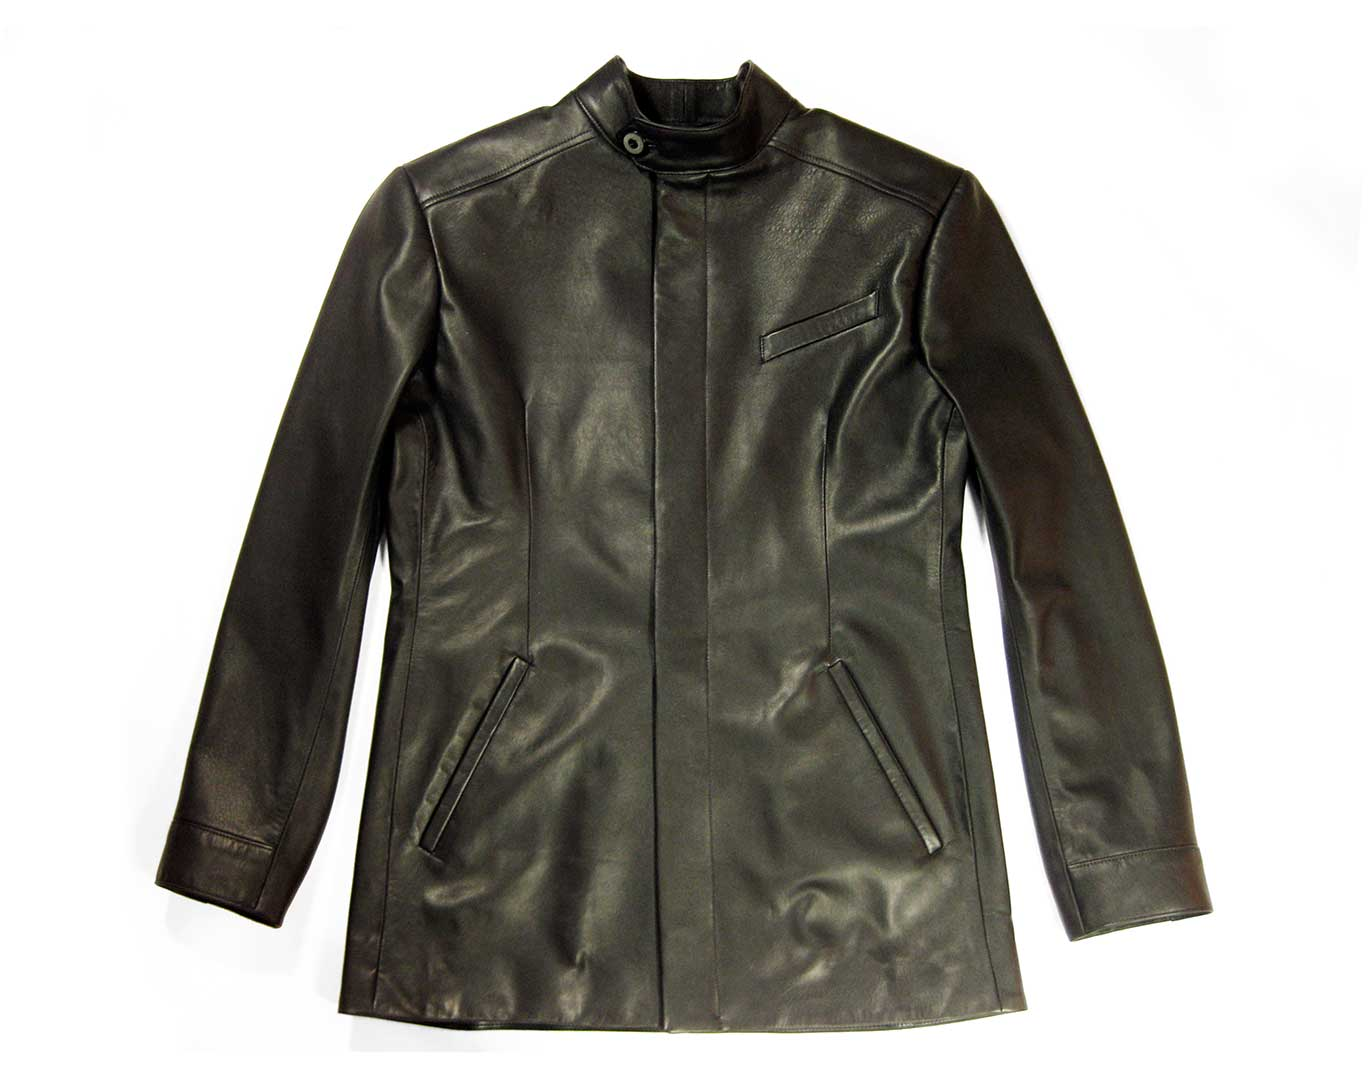 leather-nehru-jacket_6102-15-30